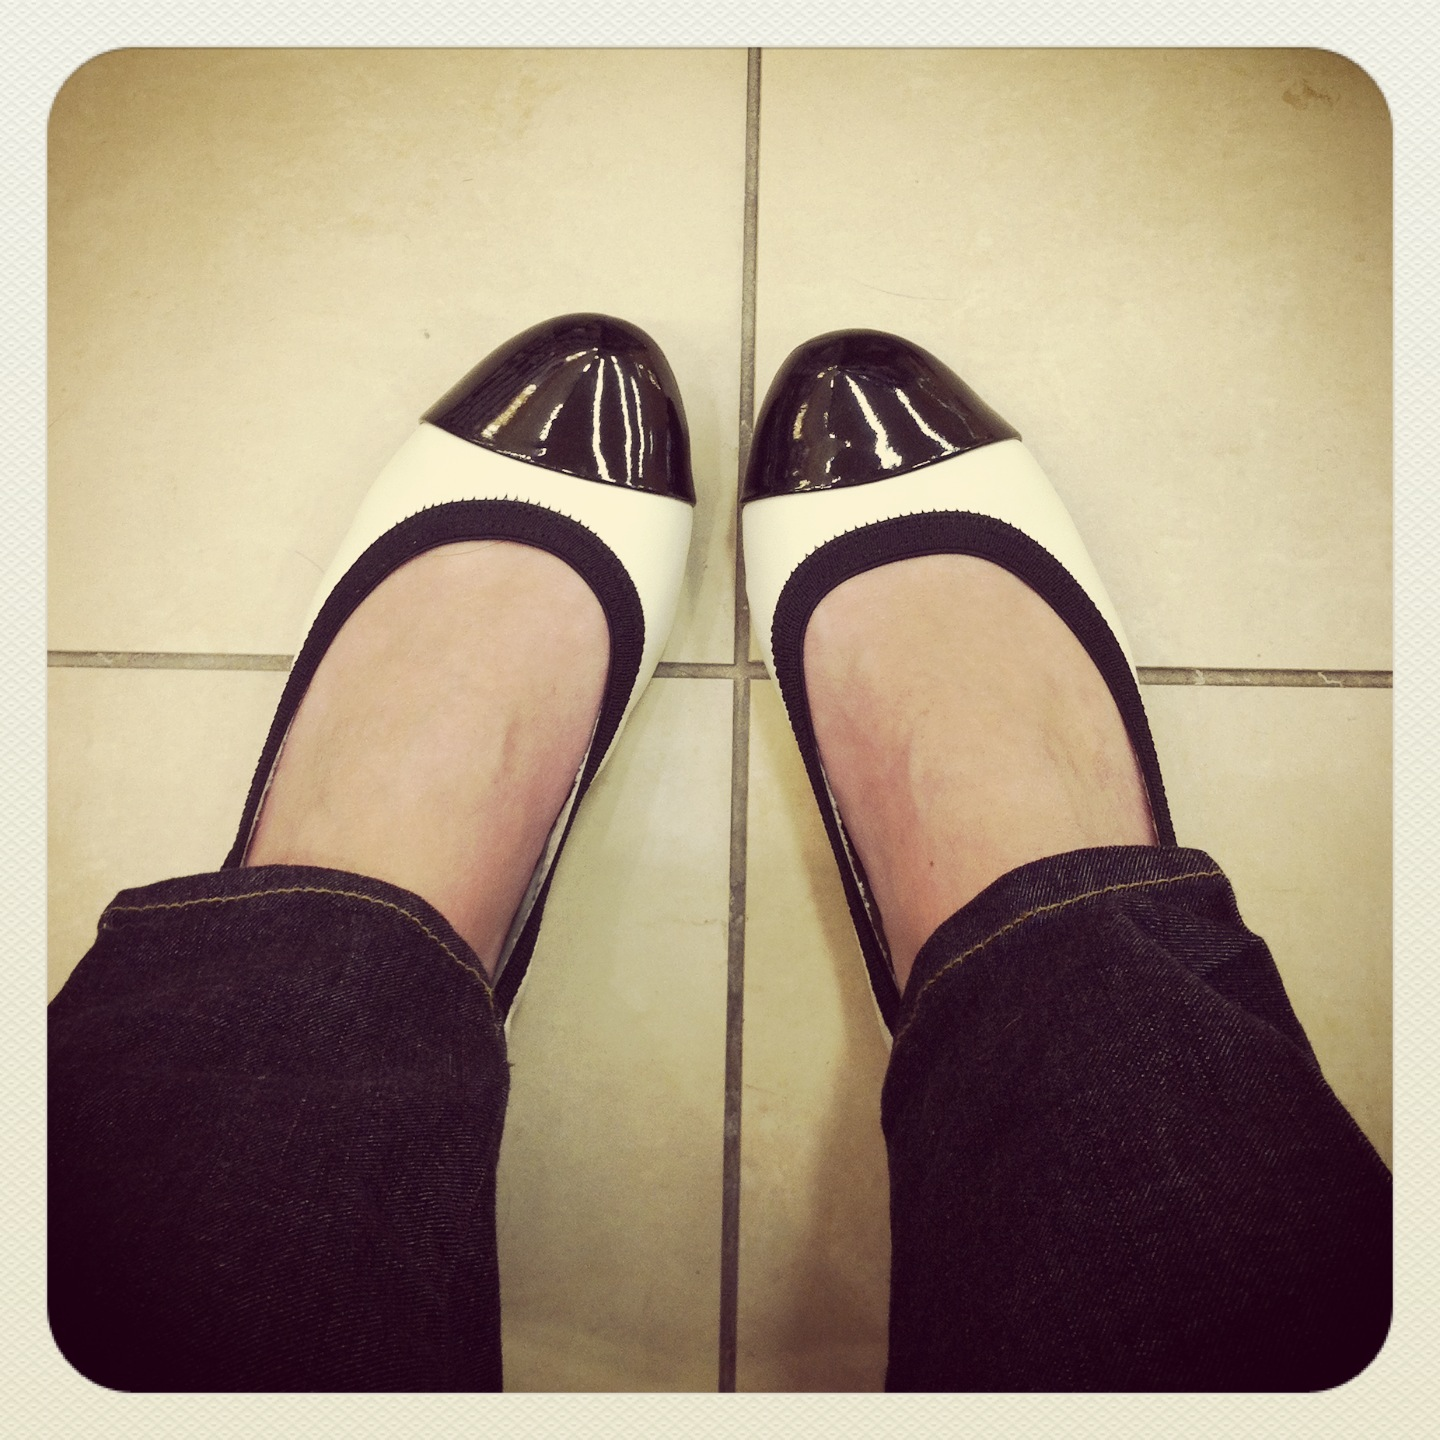 Salon shoes